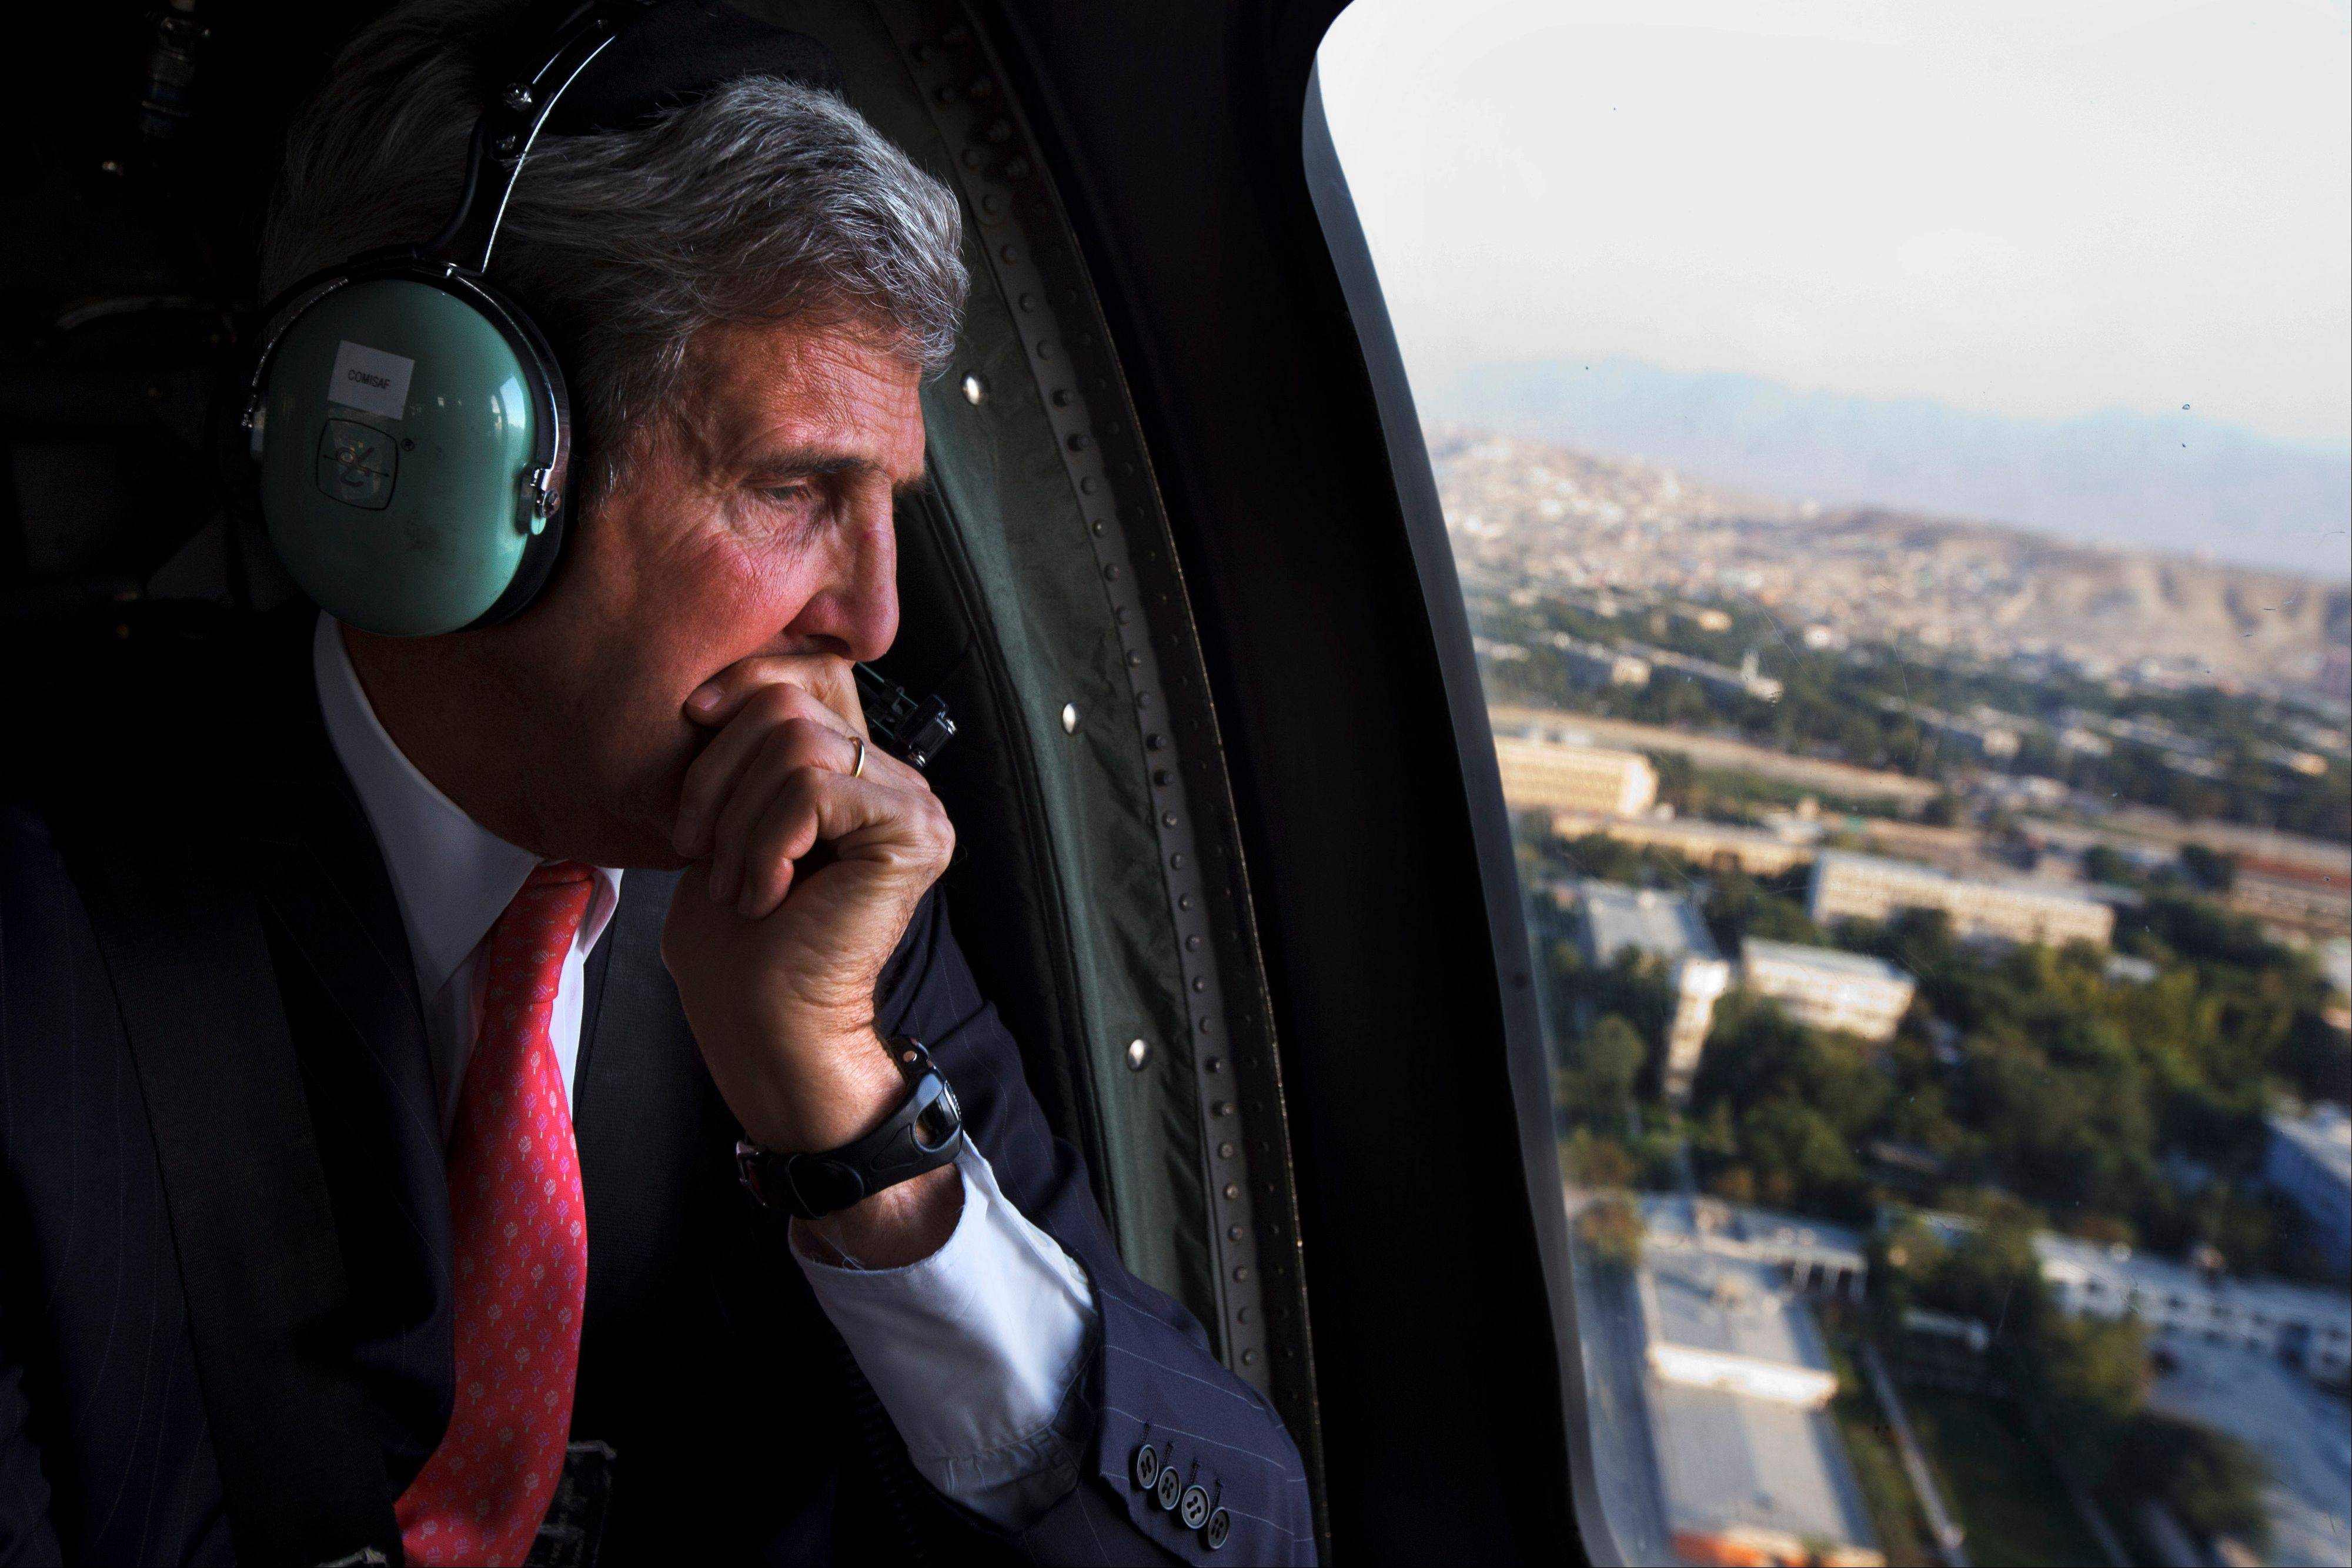 U.S. Secretary of State John Kerry looks out the window en route to the ISAF headquarters after arriving on an unannounced visit in Kabul, Afghanistan, Friday, Oct. 11, 2013. Kerry flew to Afghanistan Friday for urgent talks with Afghan President Hamid Karzai as an end of October deadline looms for completing a security deal that would allow American troops to remain in Afghanistan after the end of the NATO-led military mission next year.